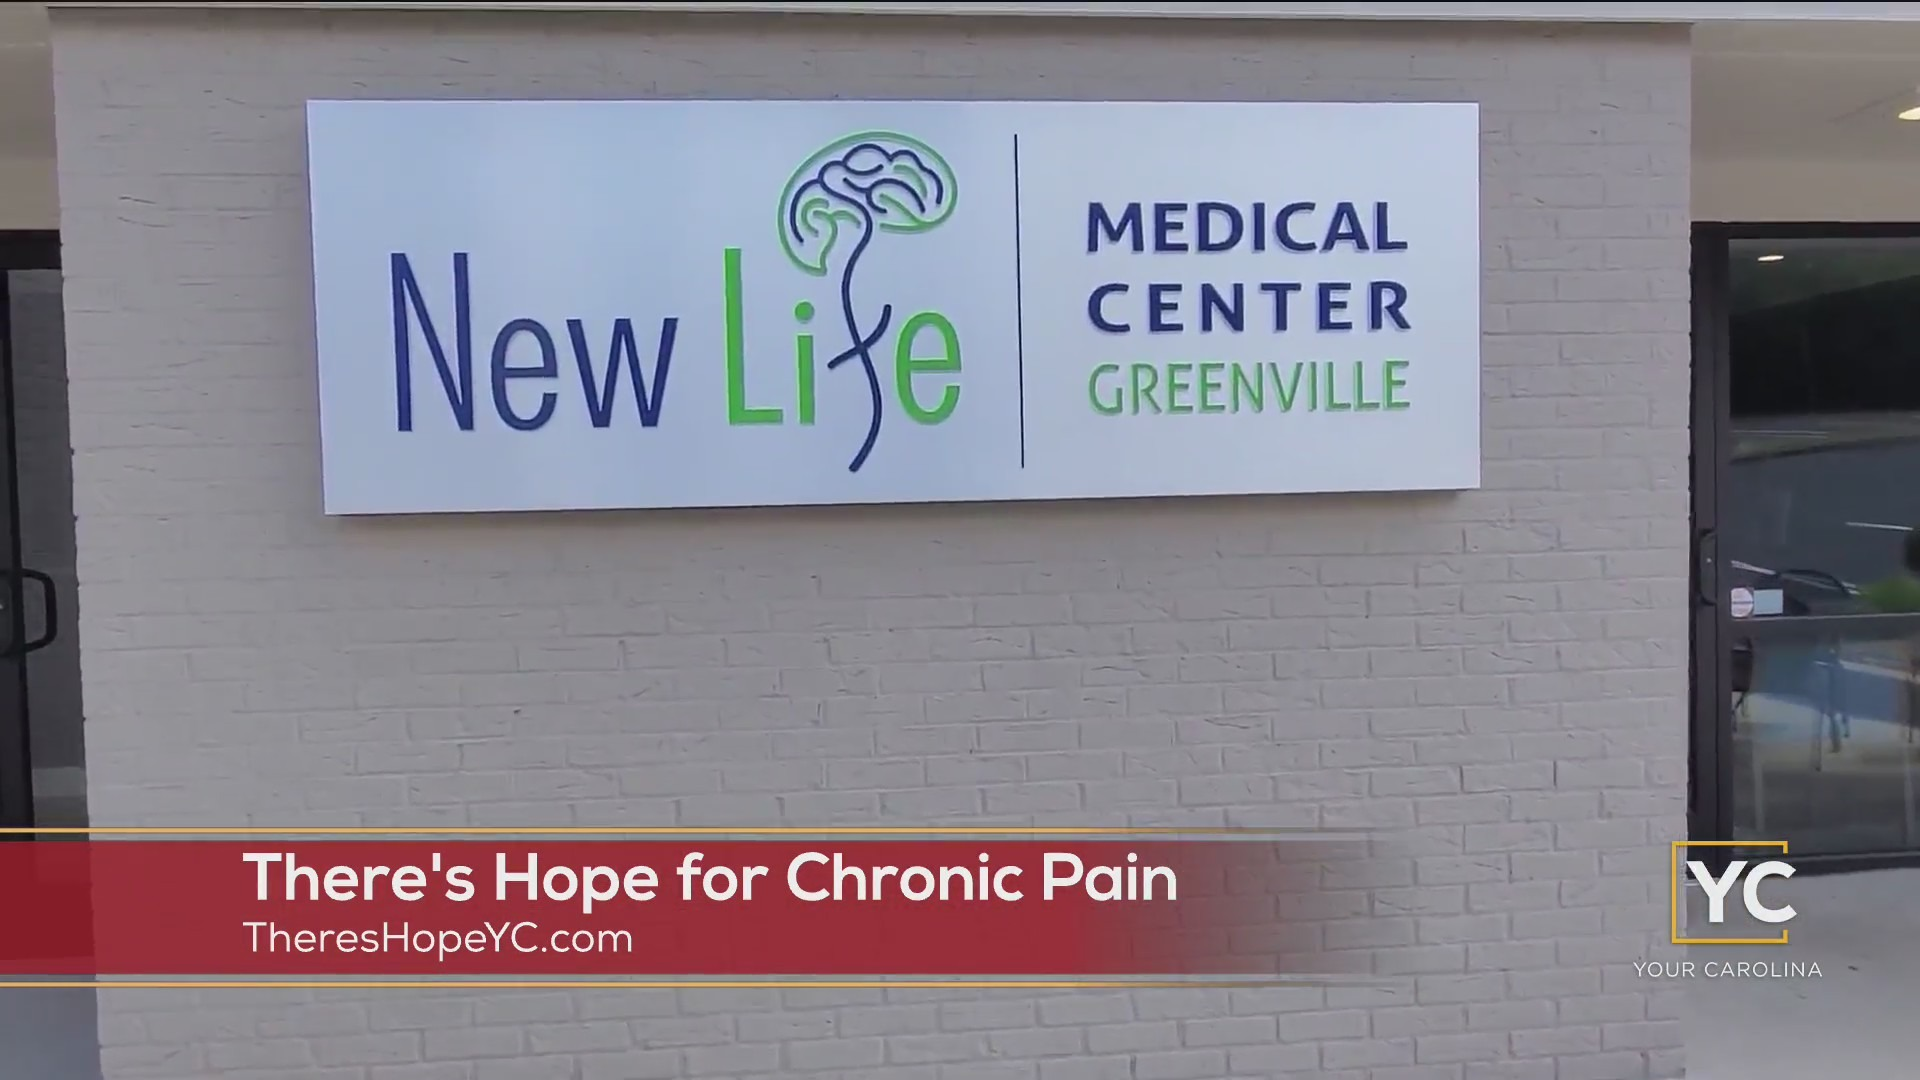 New Life Medical Centers - There's Hope for Chronic Pain